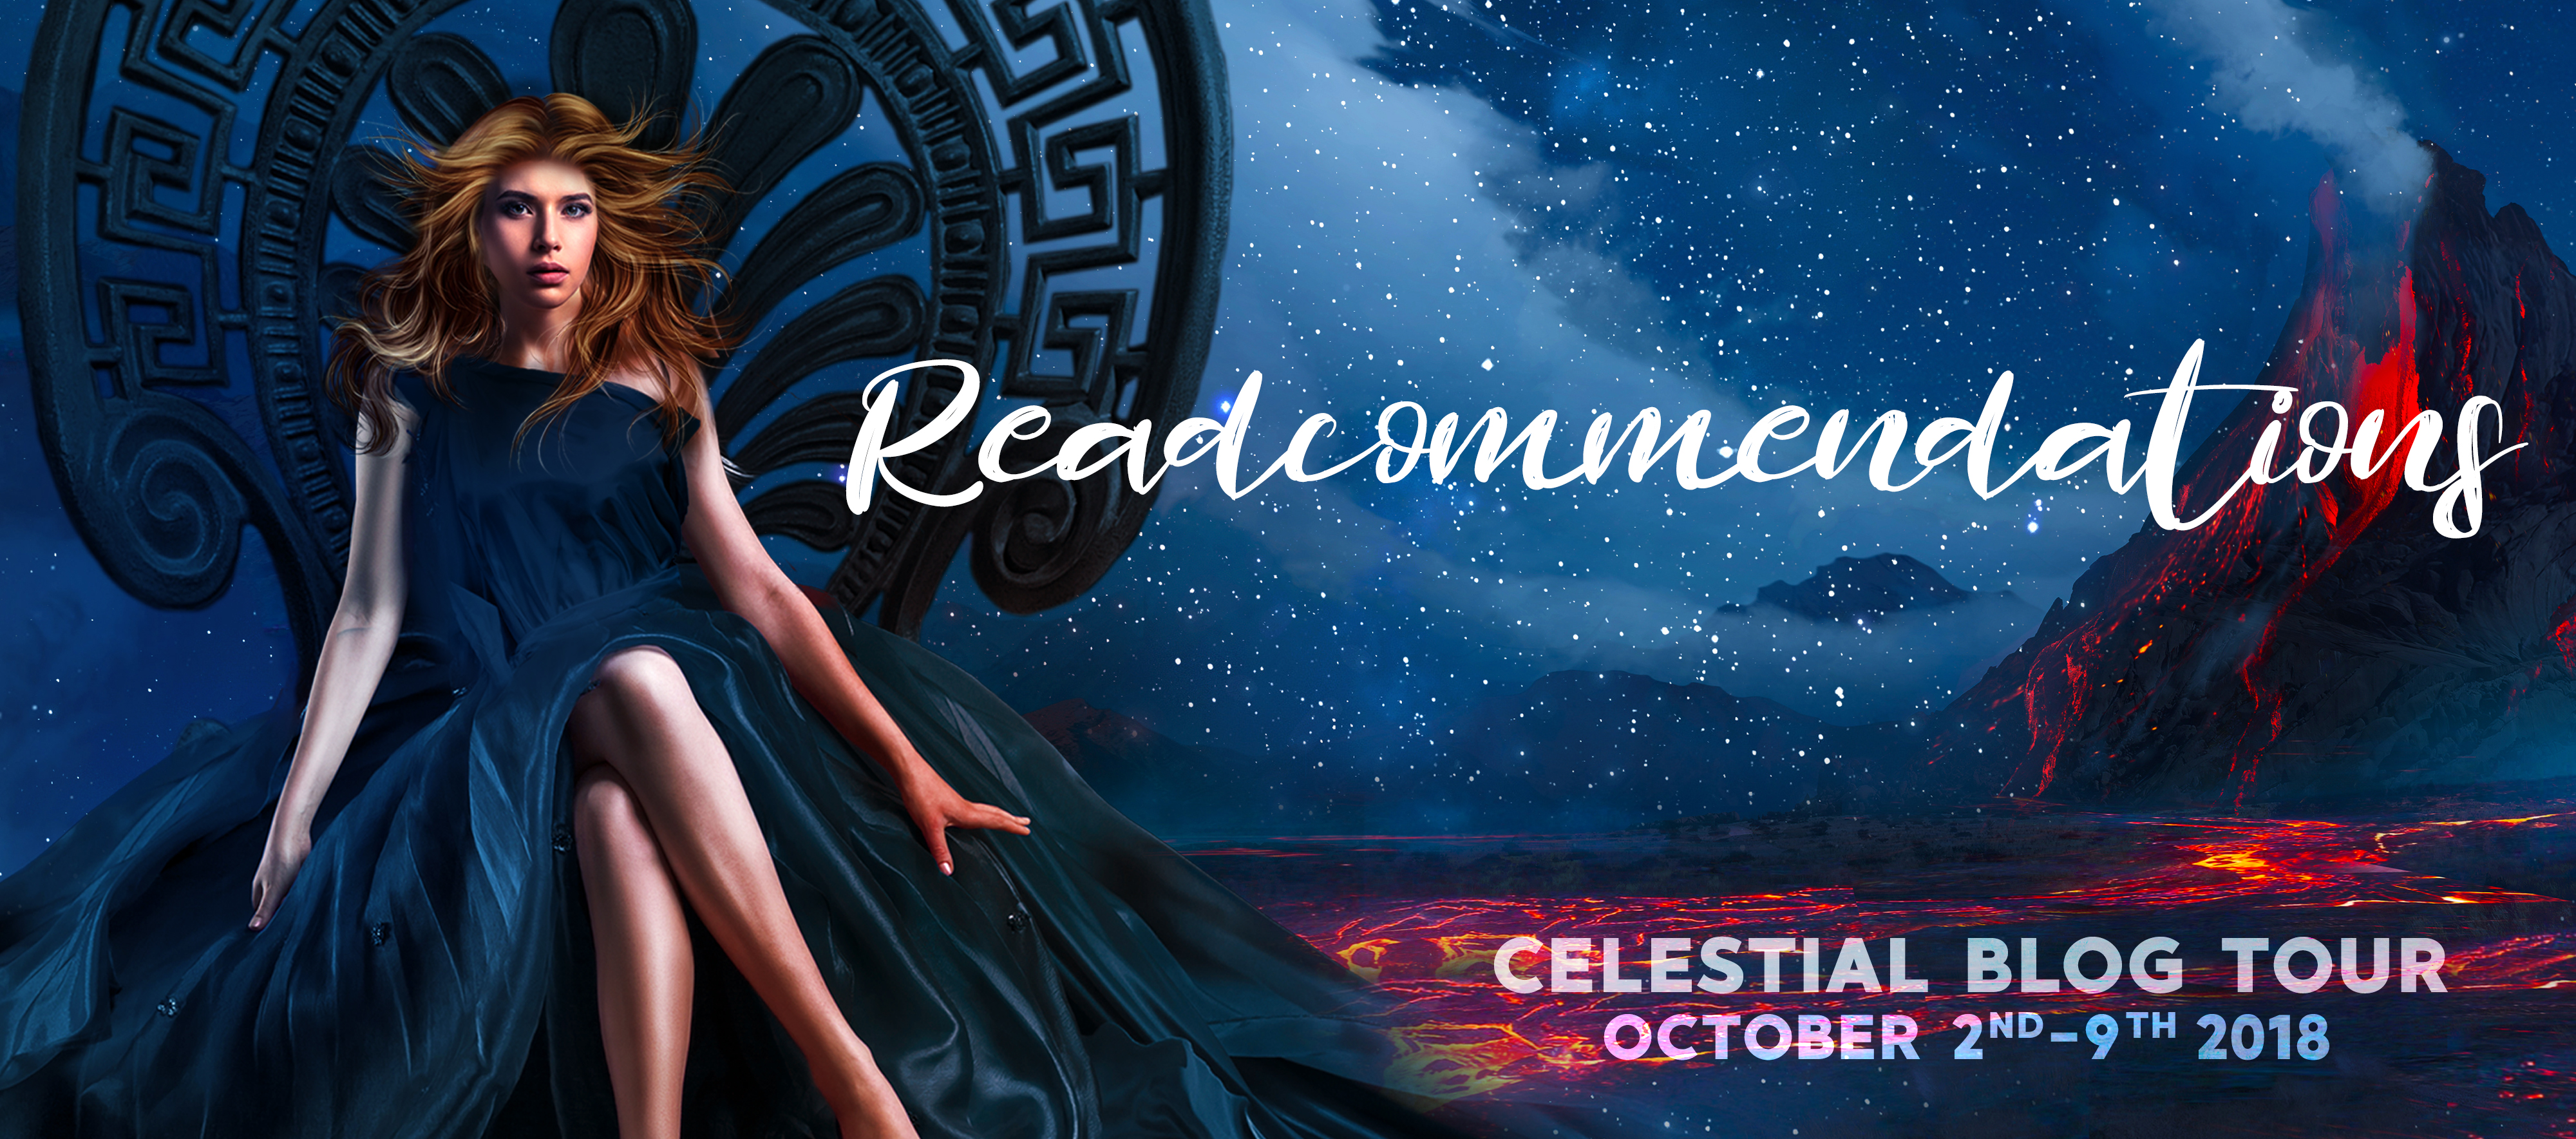 Blog Tour Readcommendations